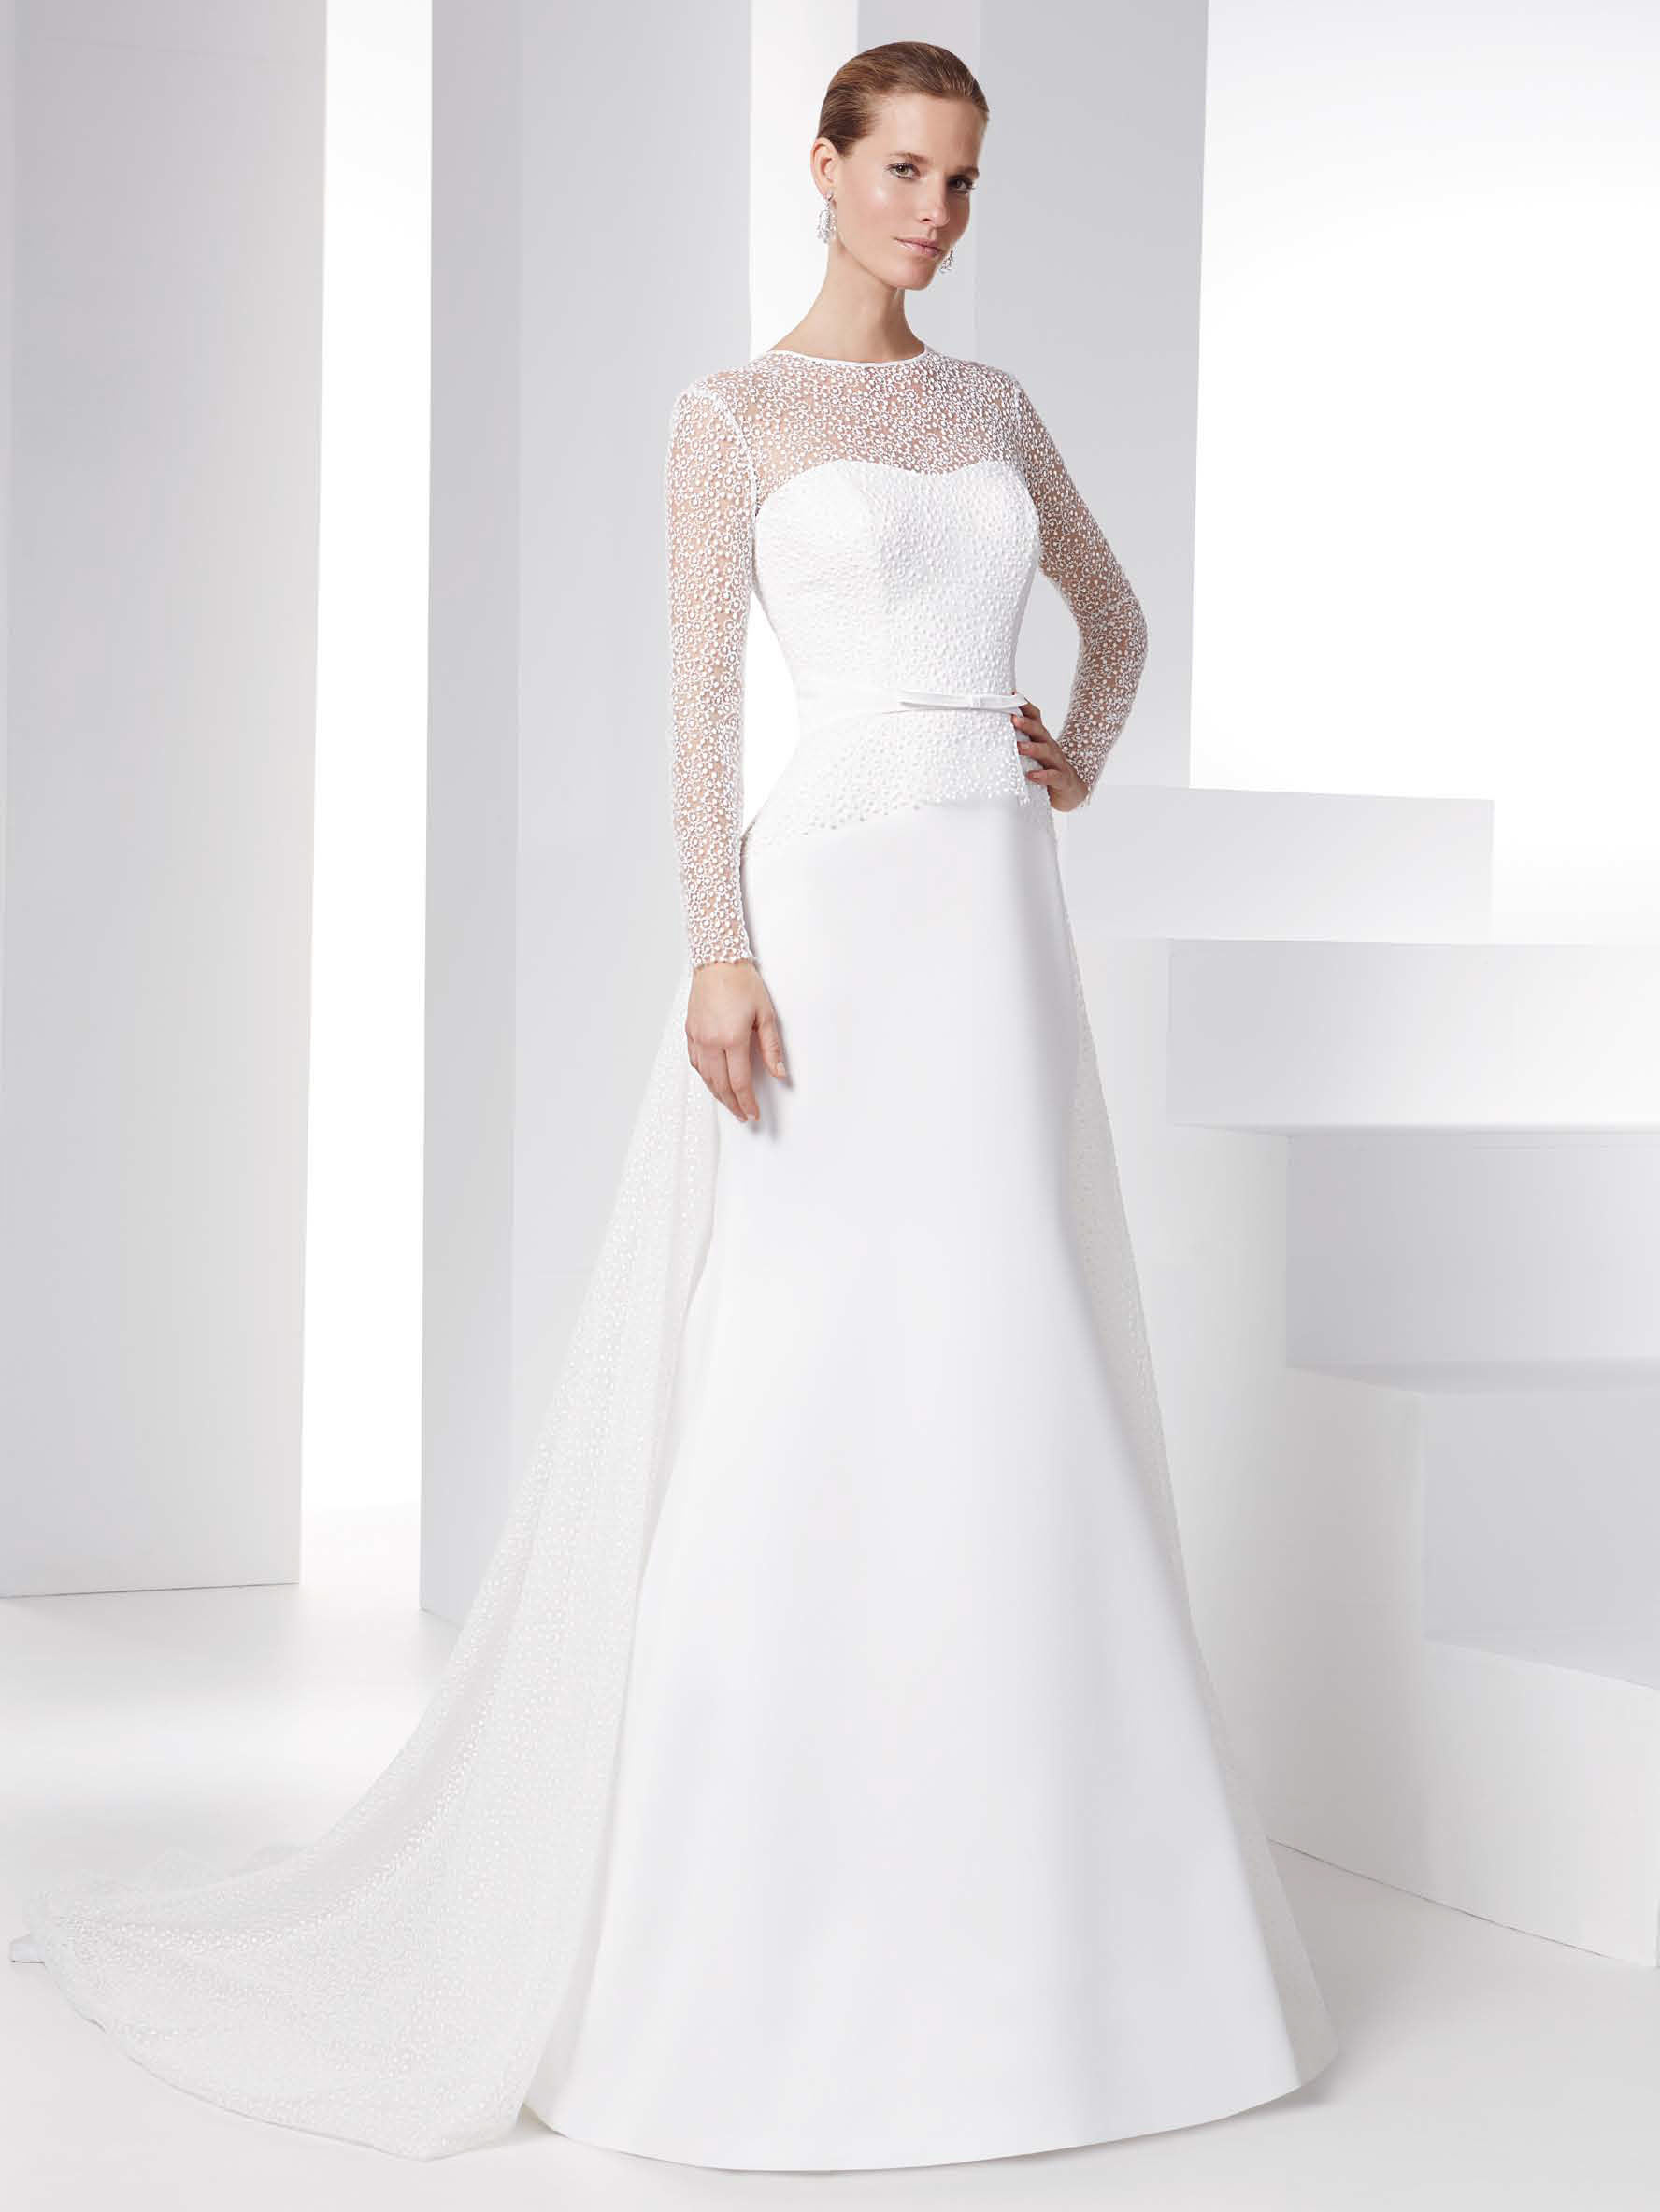 the latest 6bb2b cb3e4 Vestiti sposa coprispalle 2016 esempio Raimon Bundo – Look Sposa